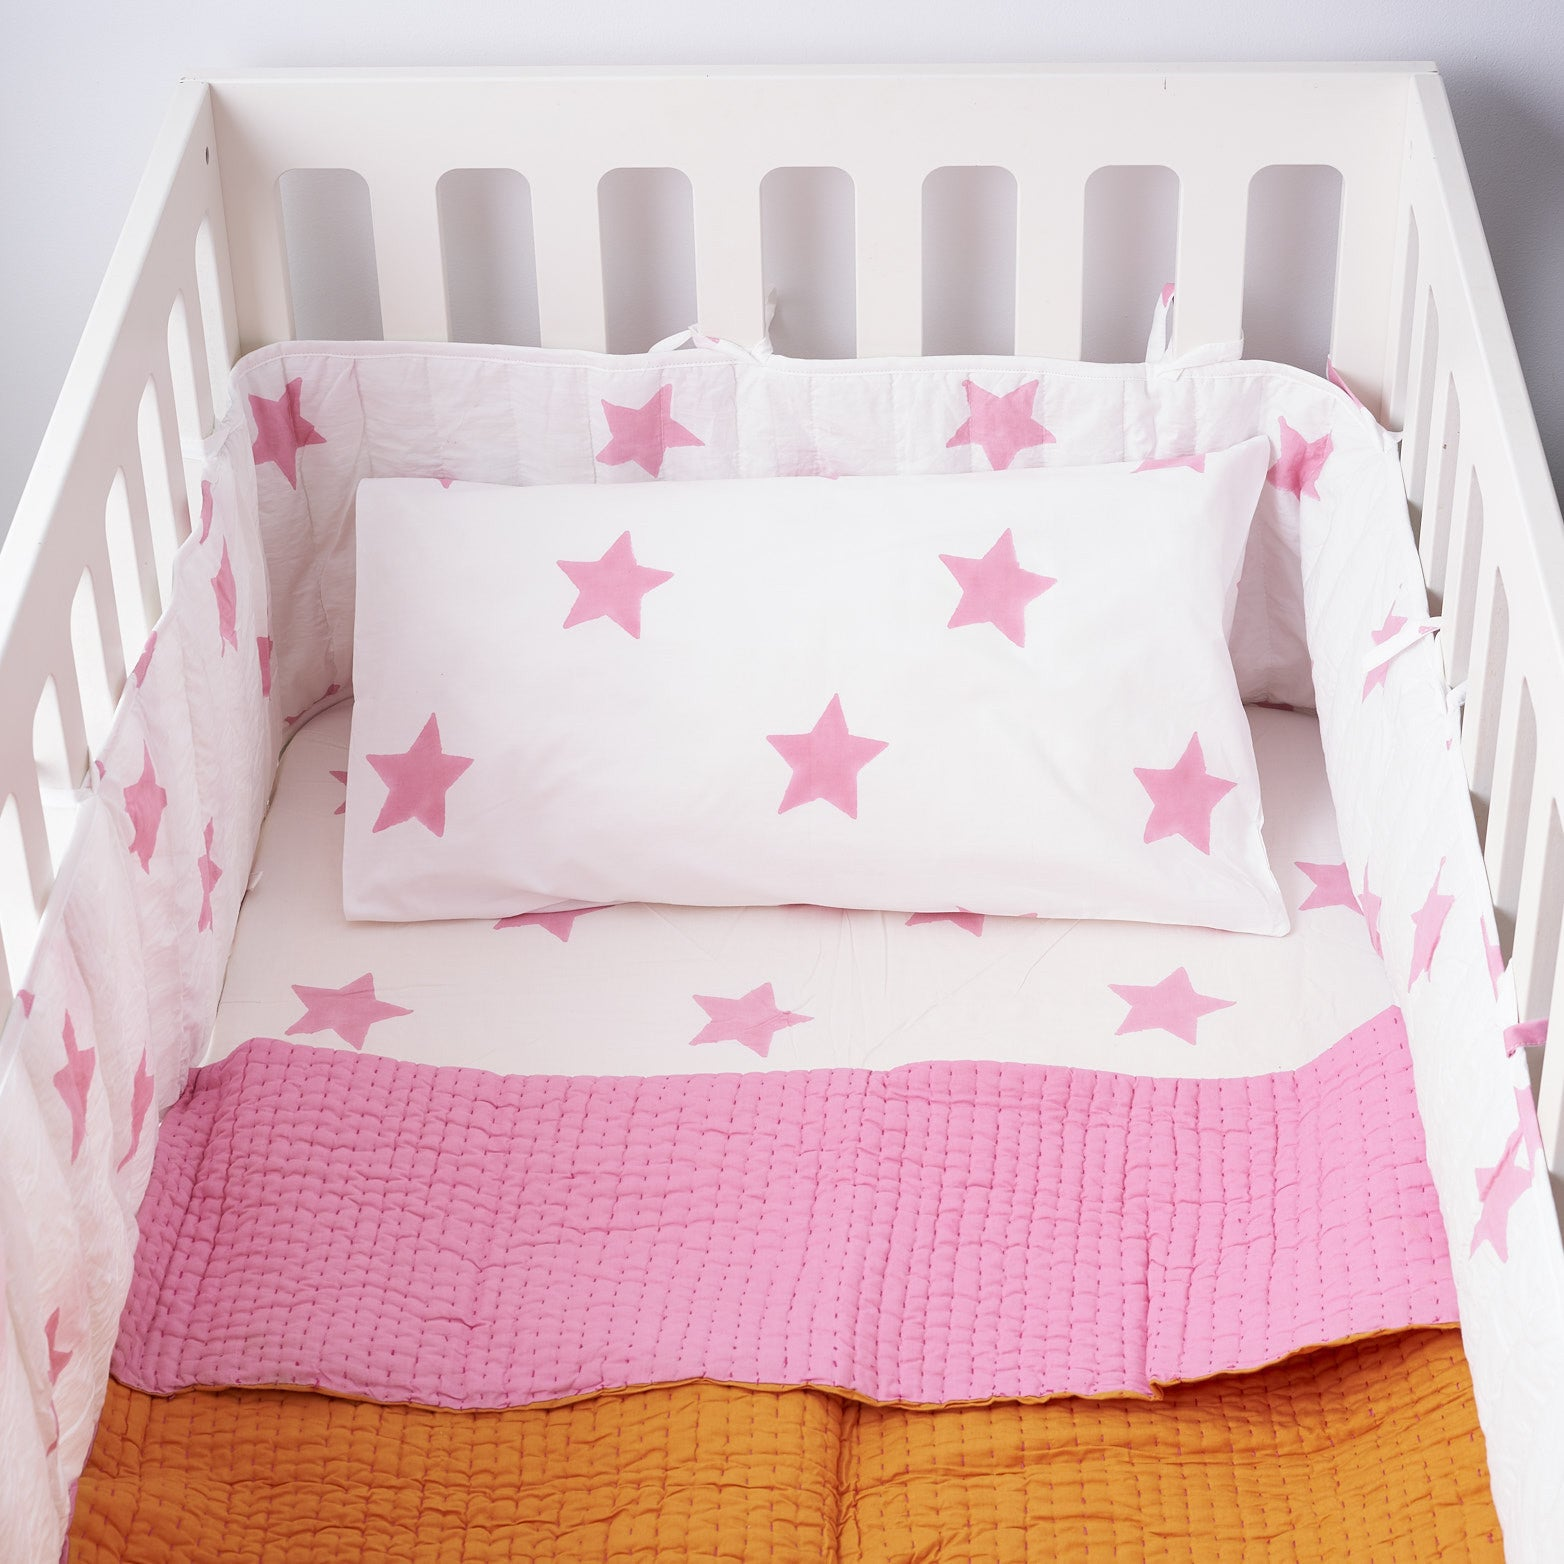 Pastel pink star cot bed bumper